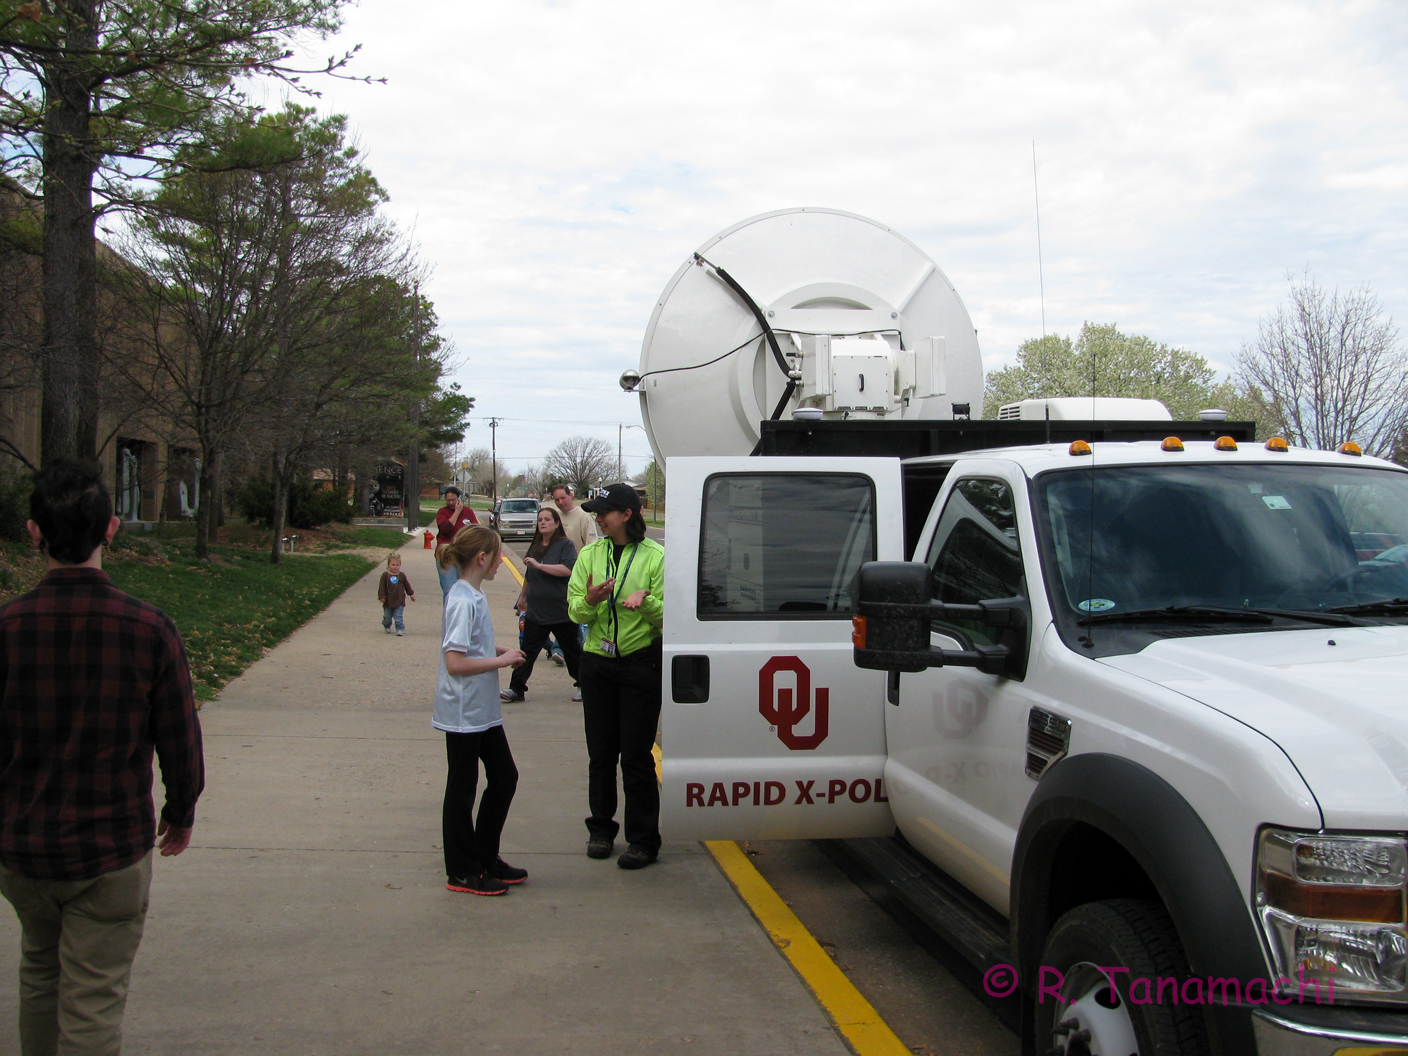 RaXPol demo at the OKC Science Museum